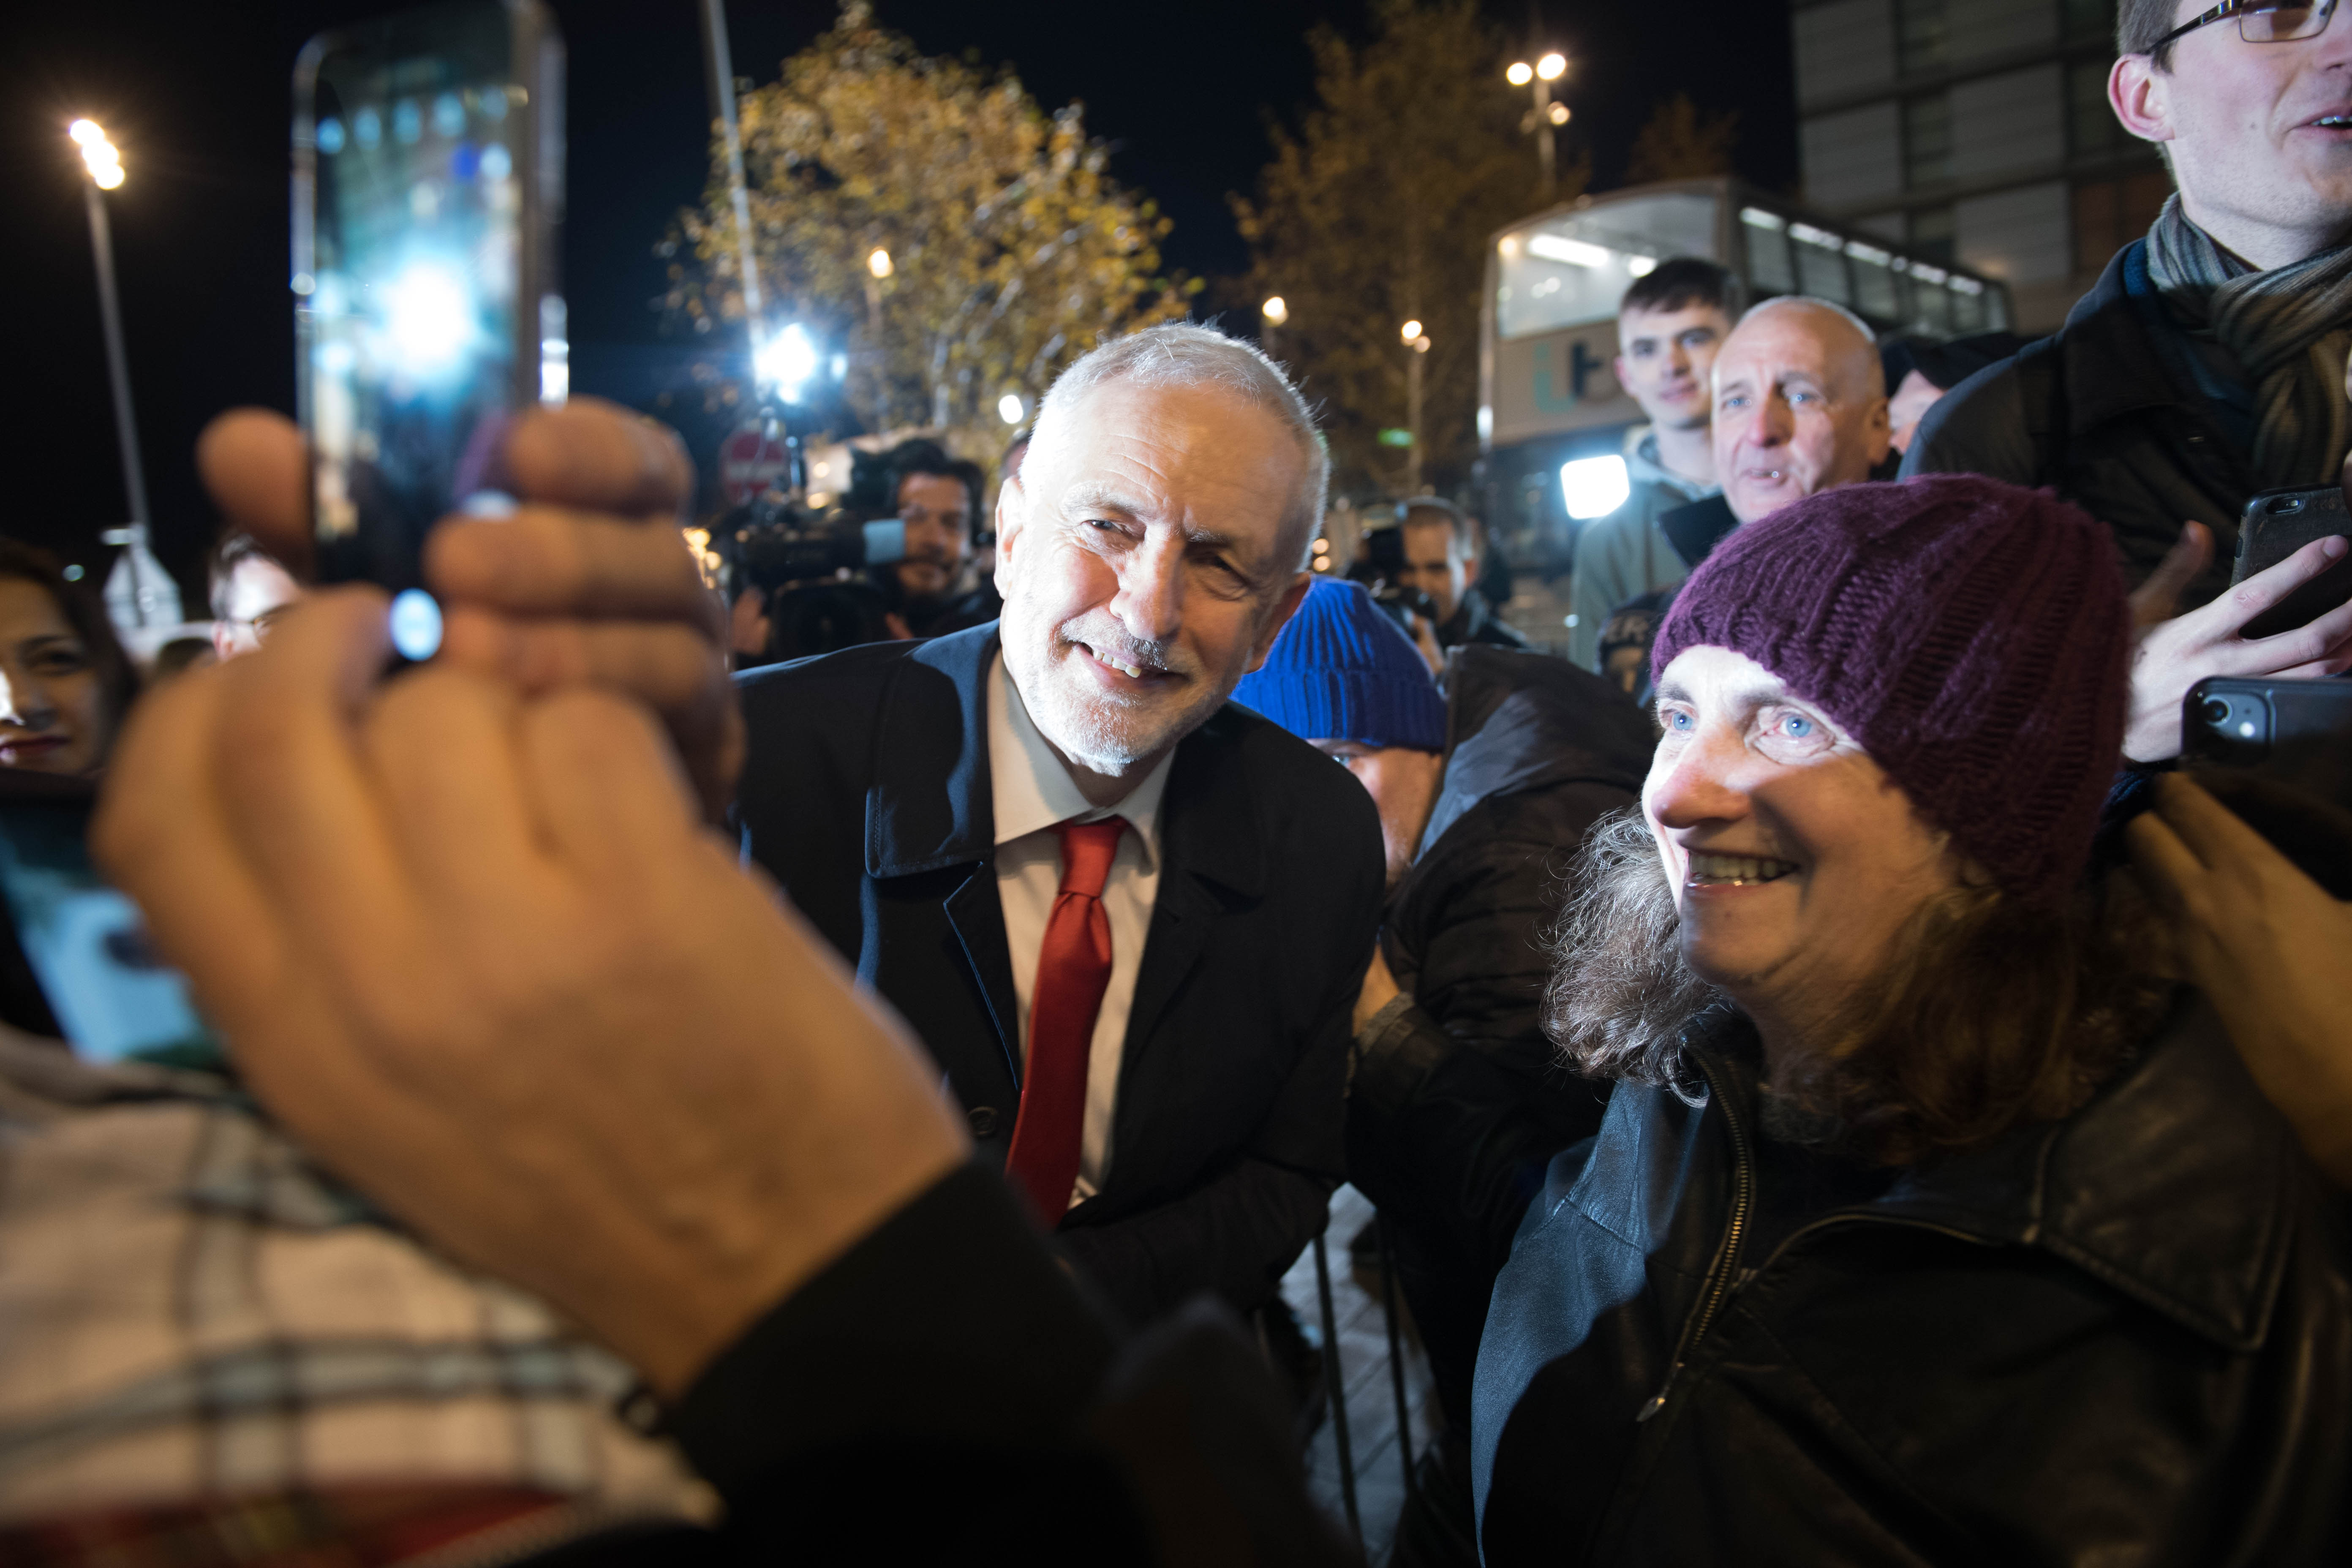 Labour Party leader Jeremy Corbyn arrives for a head-to-head General Election debate with Prime Minister Boris Johnson, at dock10 in MediaCity UK in Manchester, ahead of the General Election.